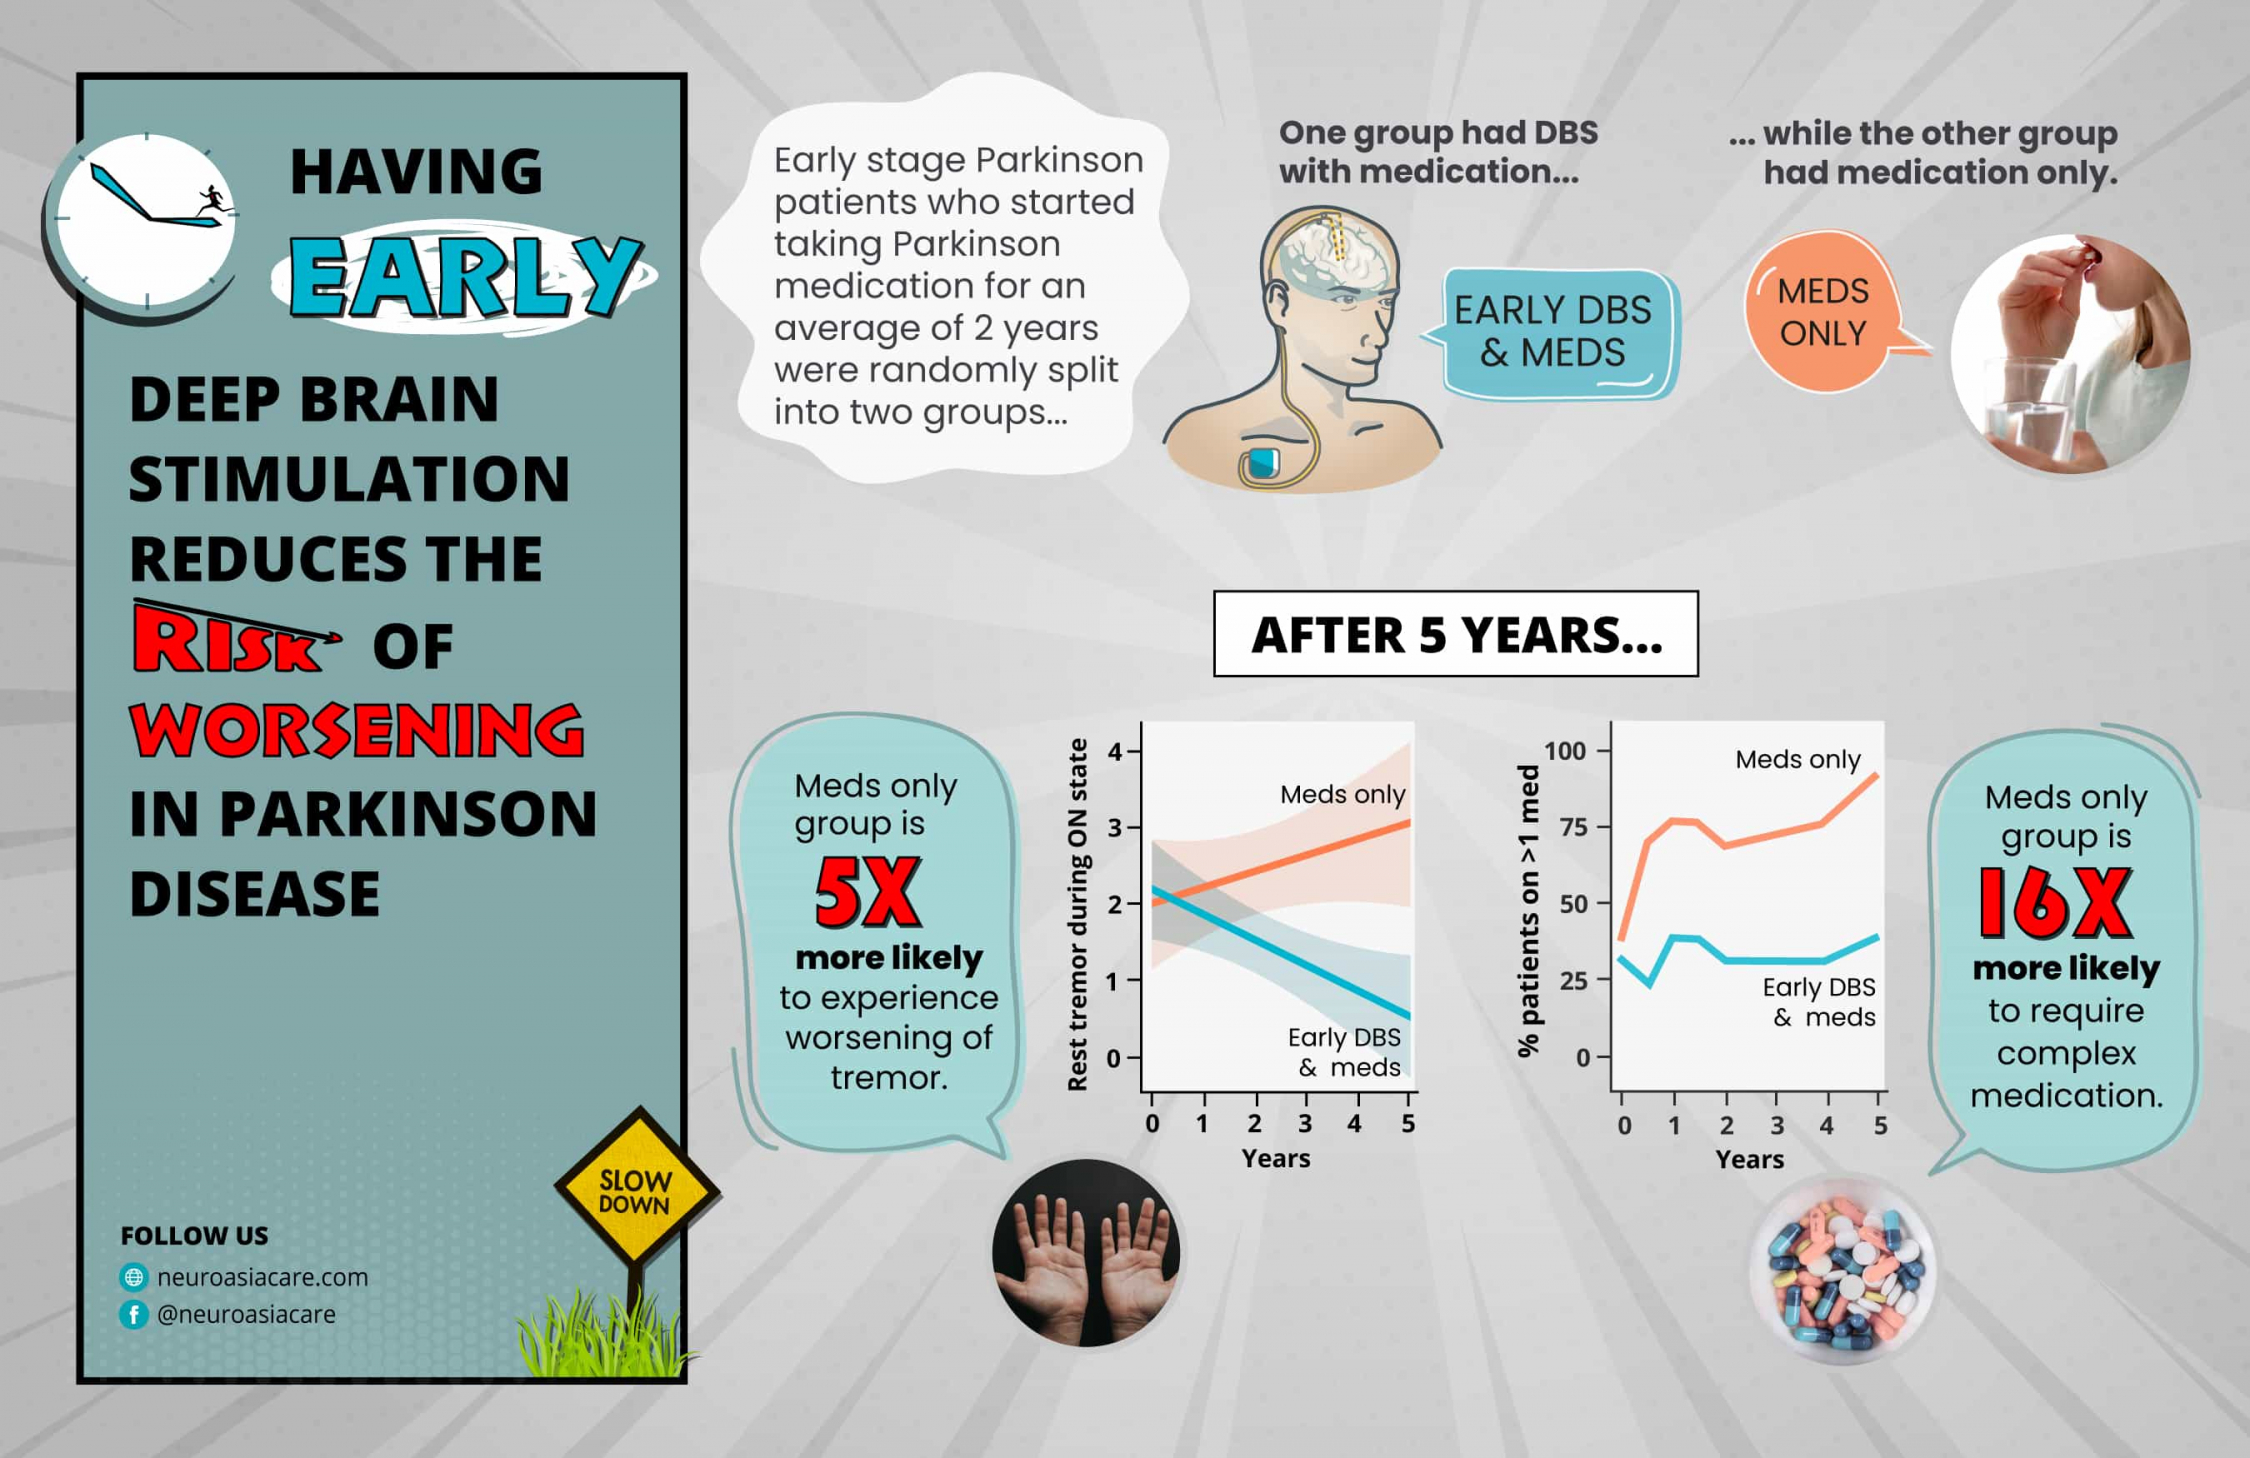 Graphic abstract shows early deep brain stimulation in Parkinson disease within four years of taking PD medication reduces risk of Parkinson disease progression.